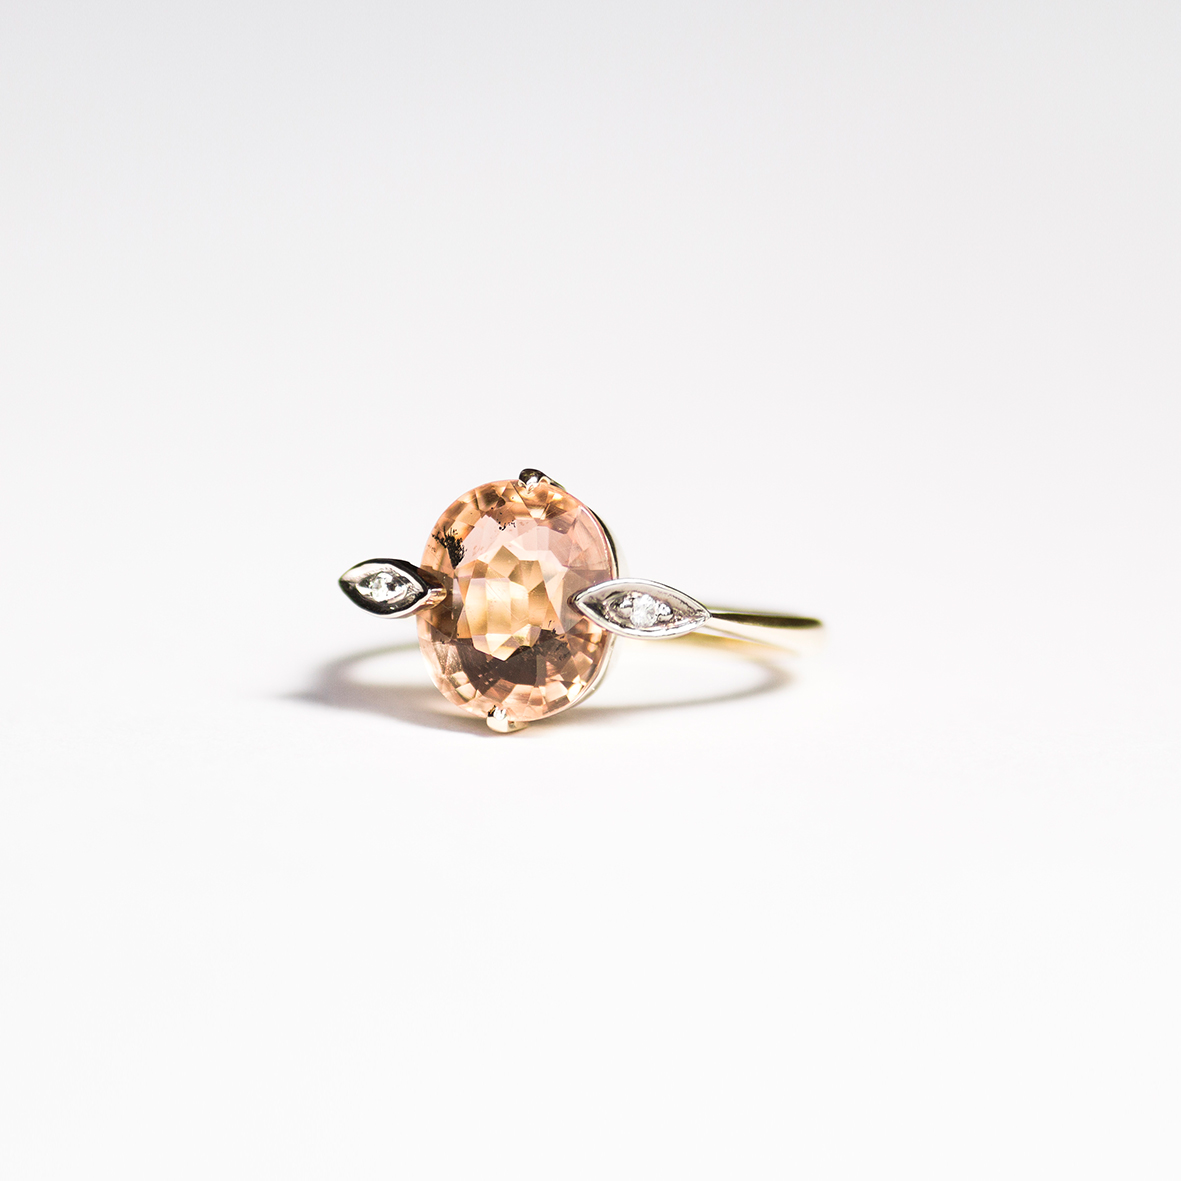 1. OONA_engagement_ficha2_peach tourmaline ring